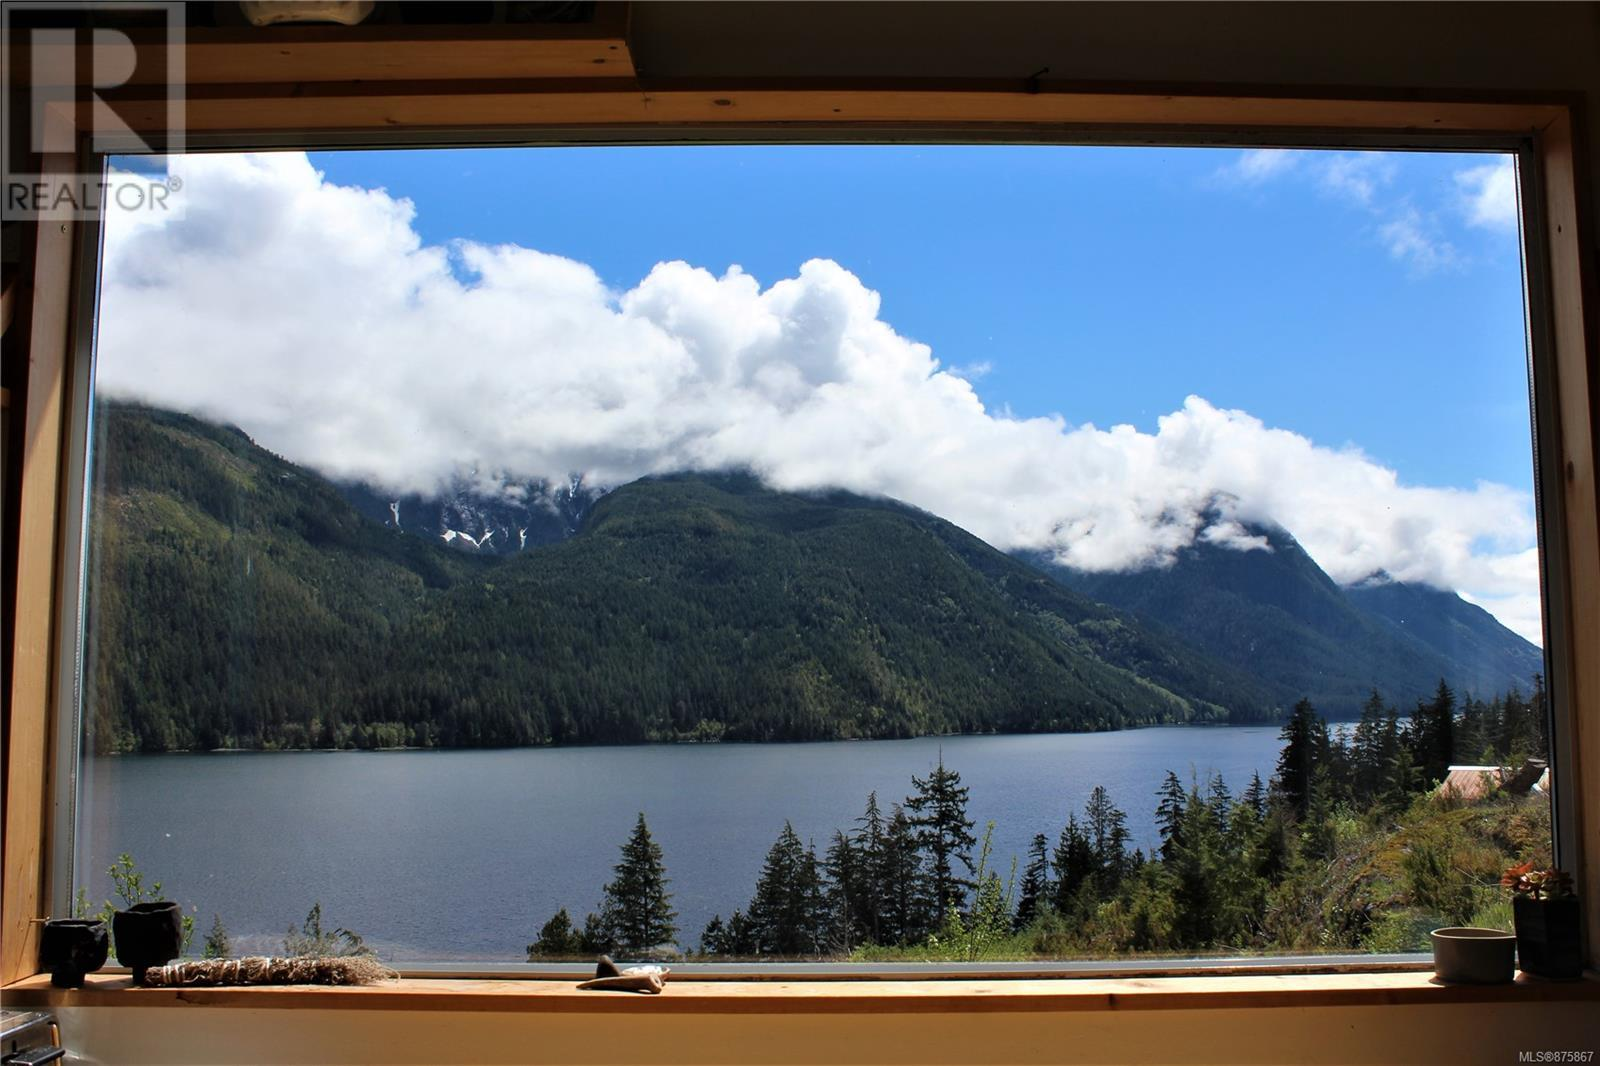 MLS® #875867 - Tahsis House For sale Image #7